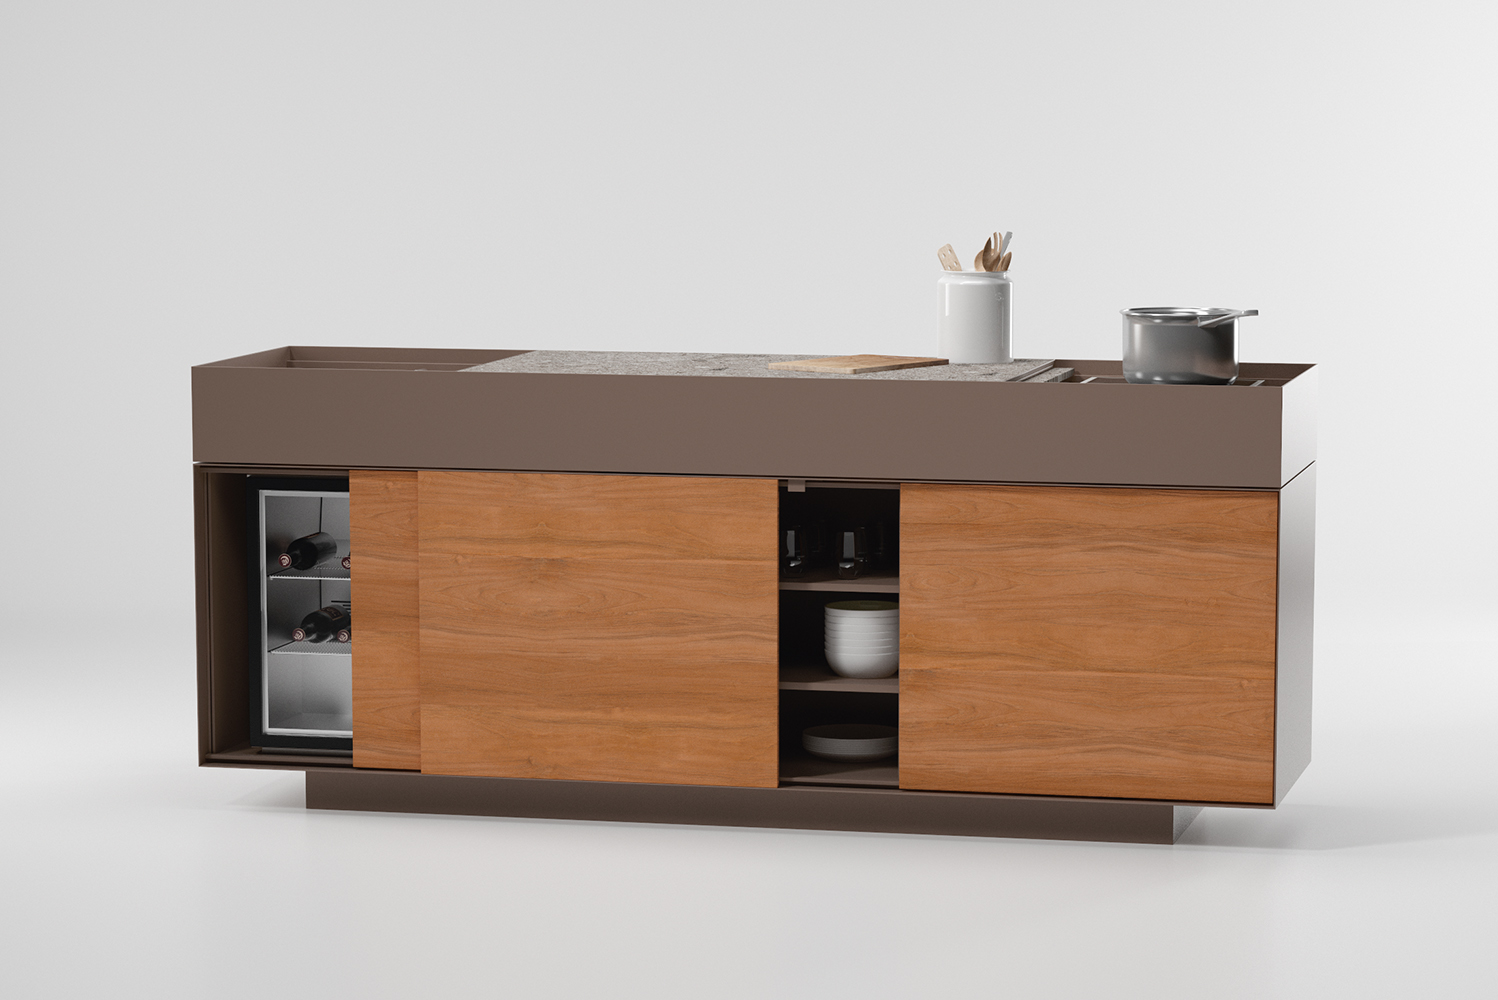 Kettal Studio added a kitchen module to the system.